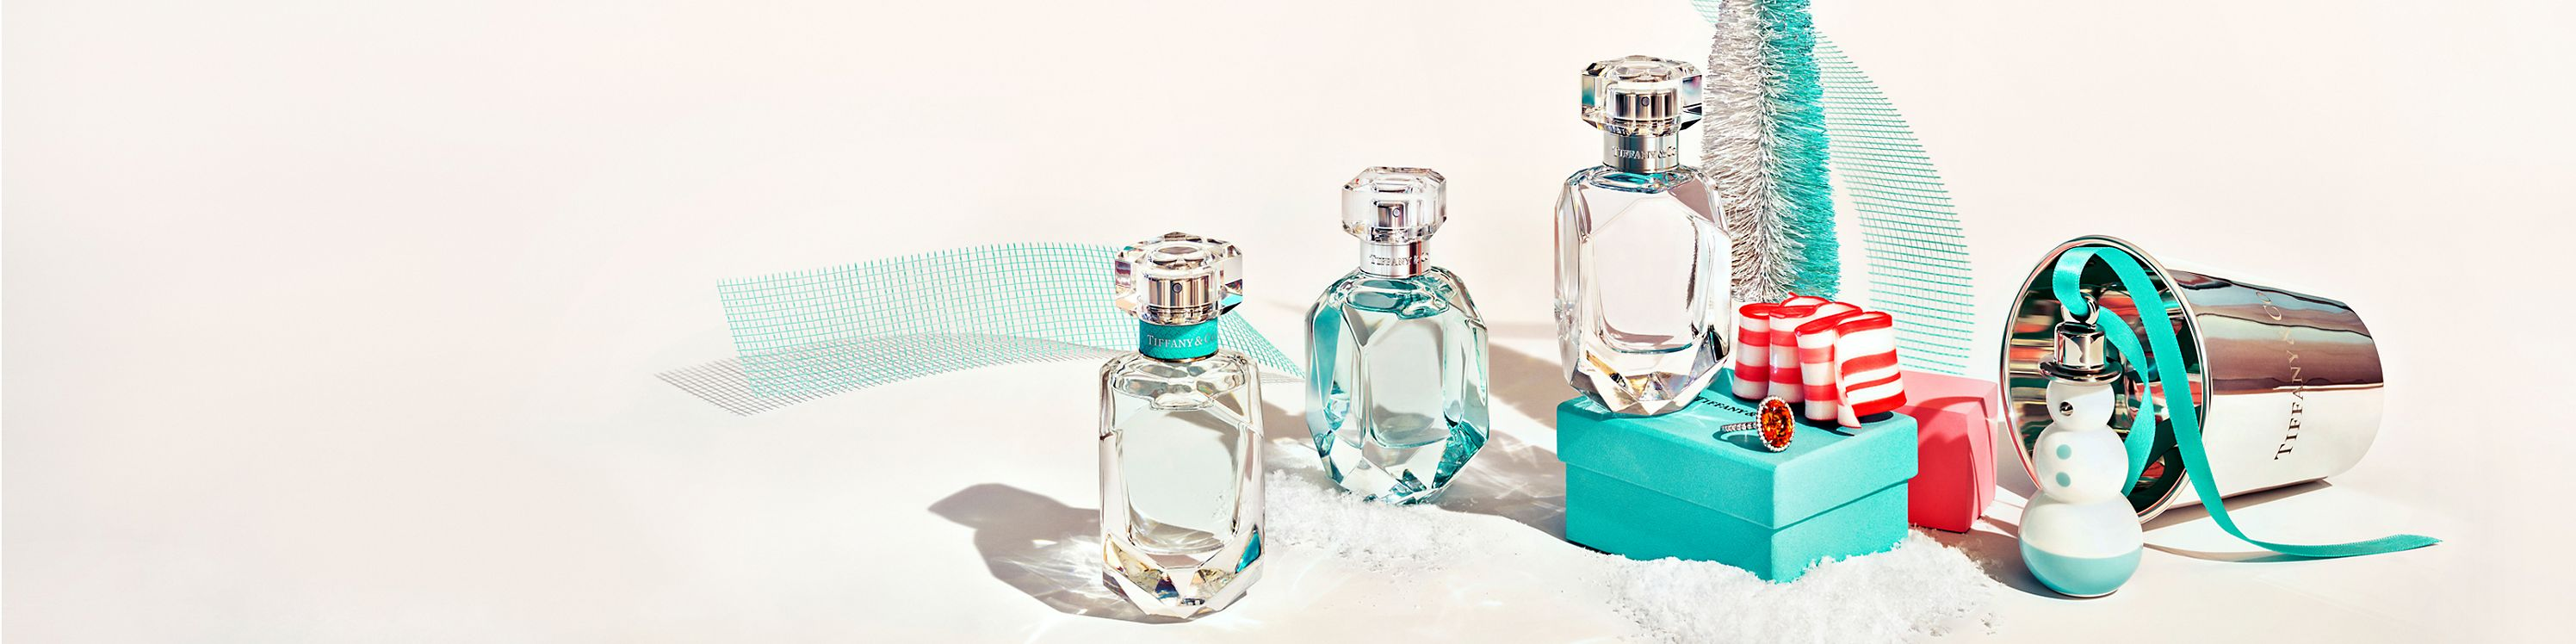 Shop Tiffany Fragrance